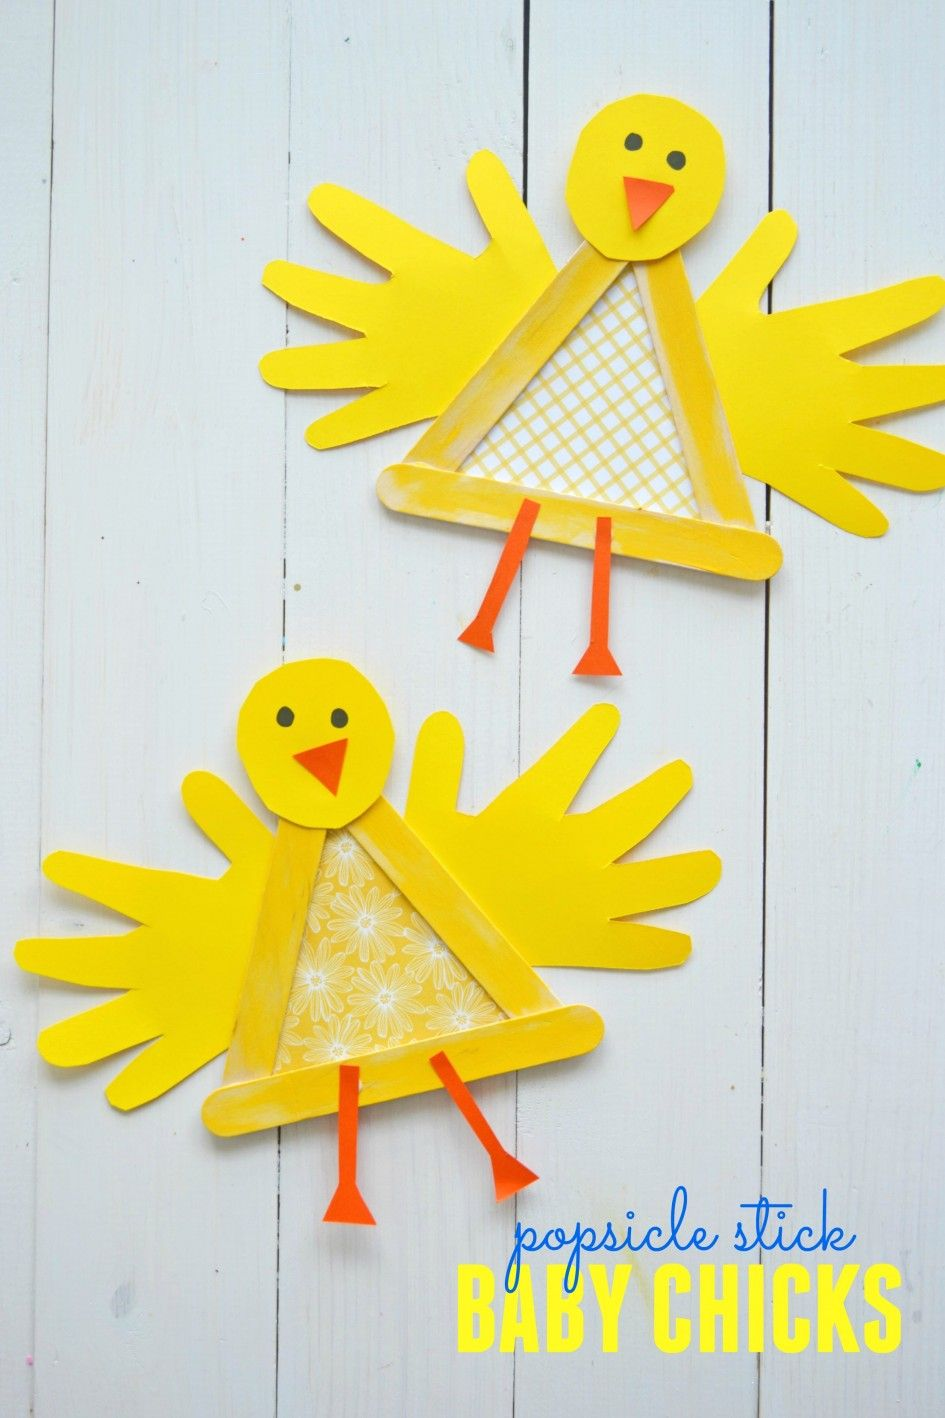 crafty popsicle stick baby chick for spring pinterest crafts